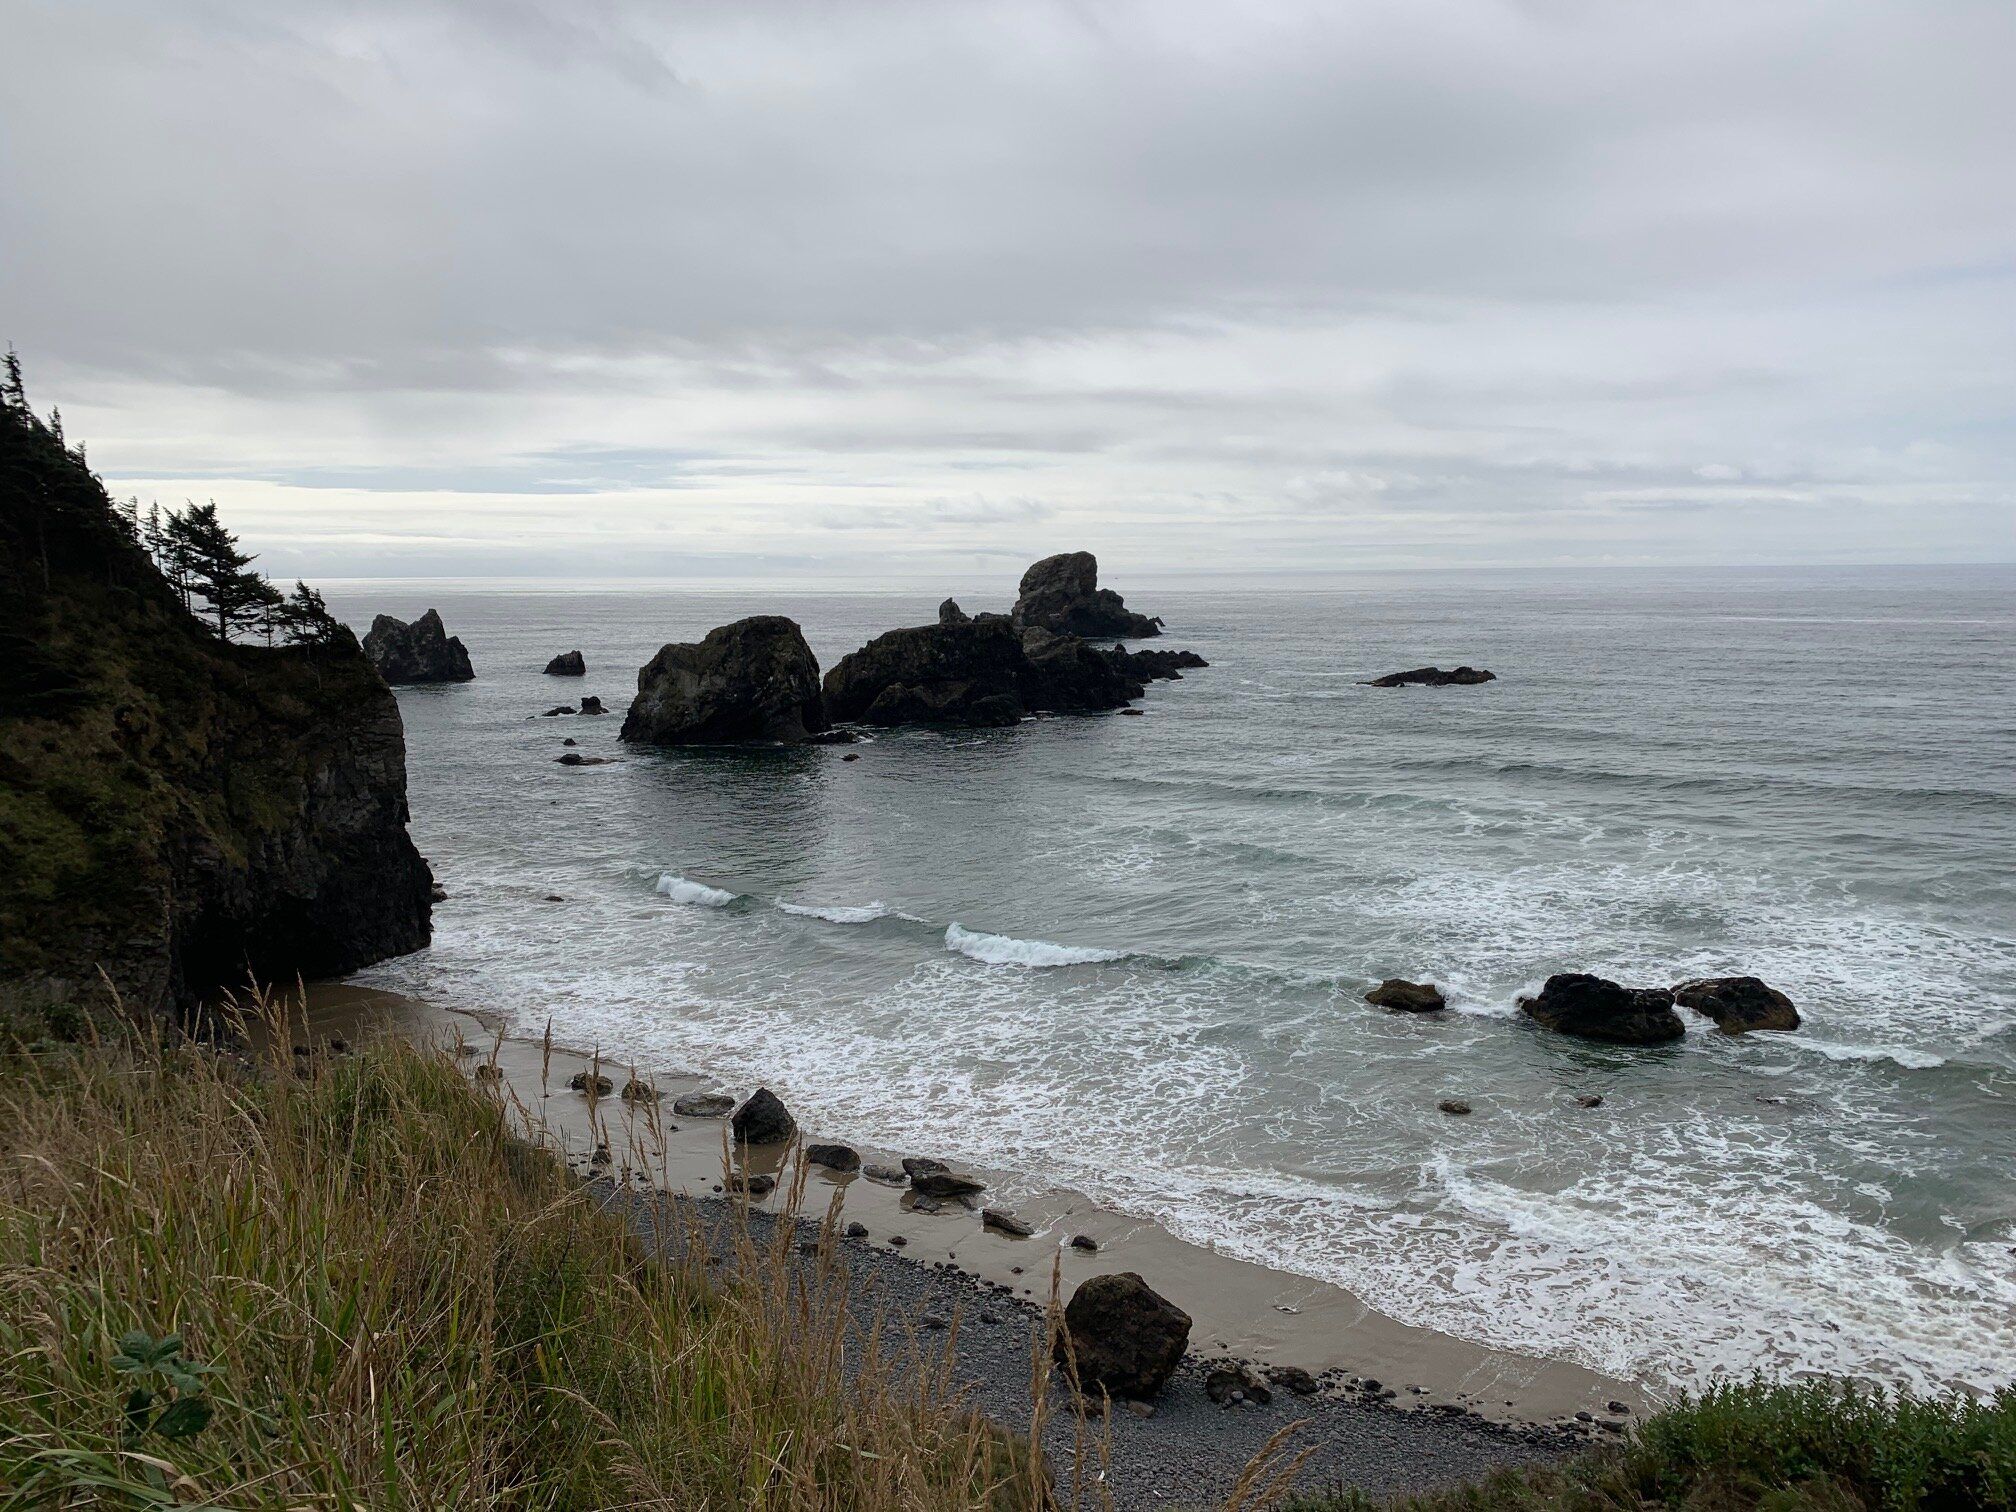 Hiking around nearby Ecola State Park is also incredible. This little beach was where the pirate ship emerged during the final scenes of  The Goonies . Other movies shot in and around this area include  Point Break  and  Kindergarten Cop .